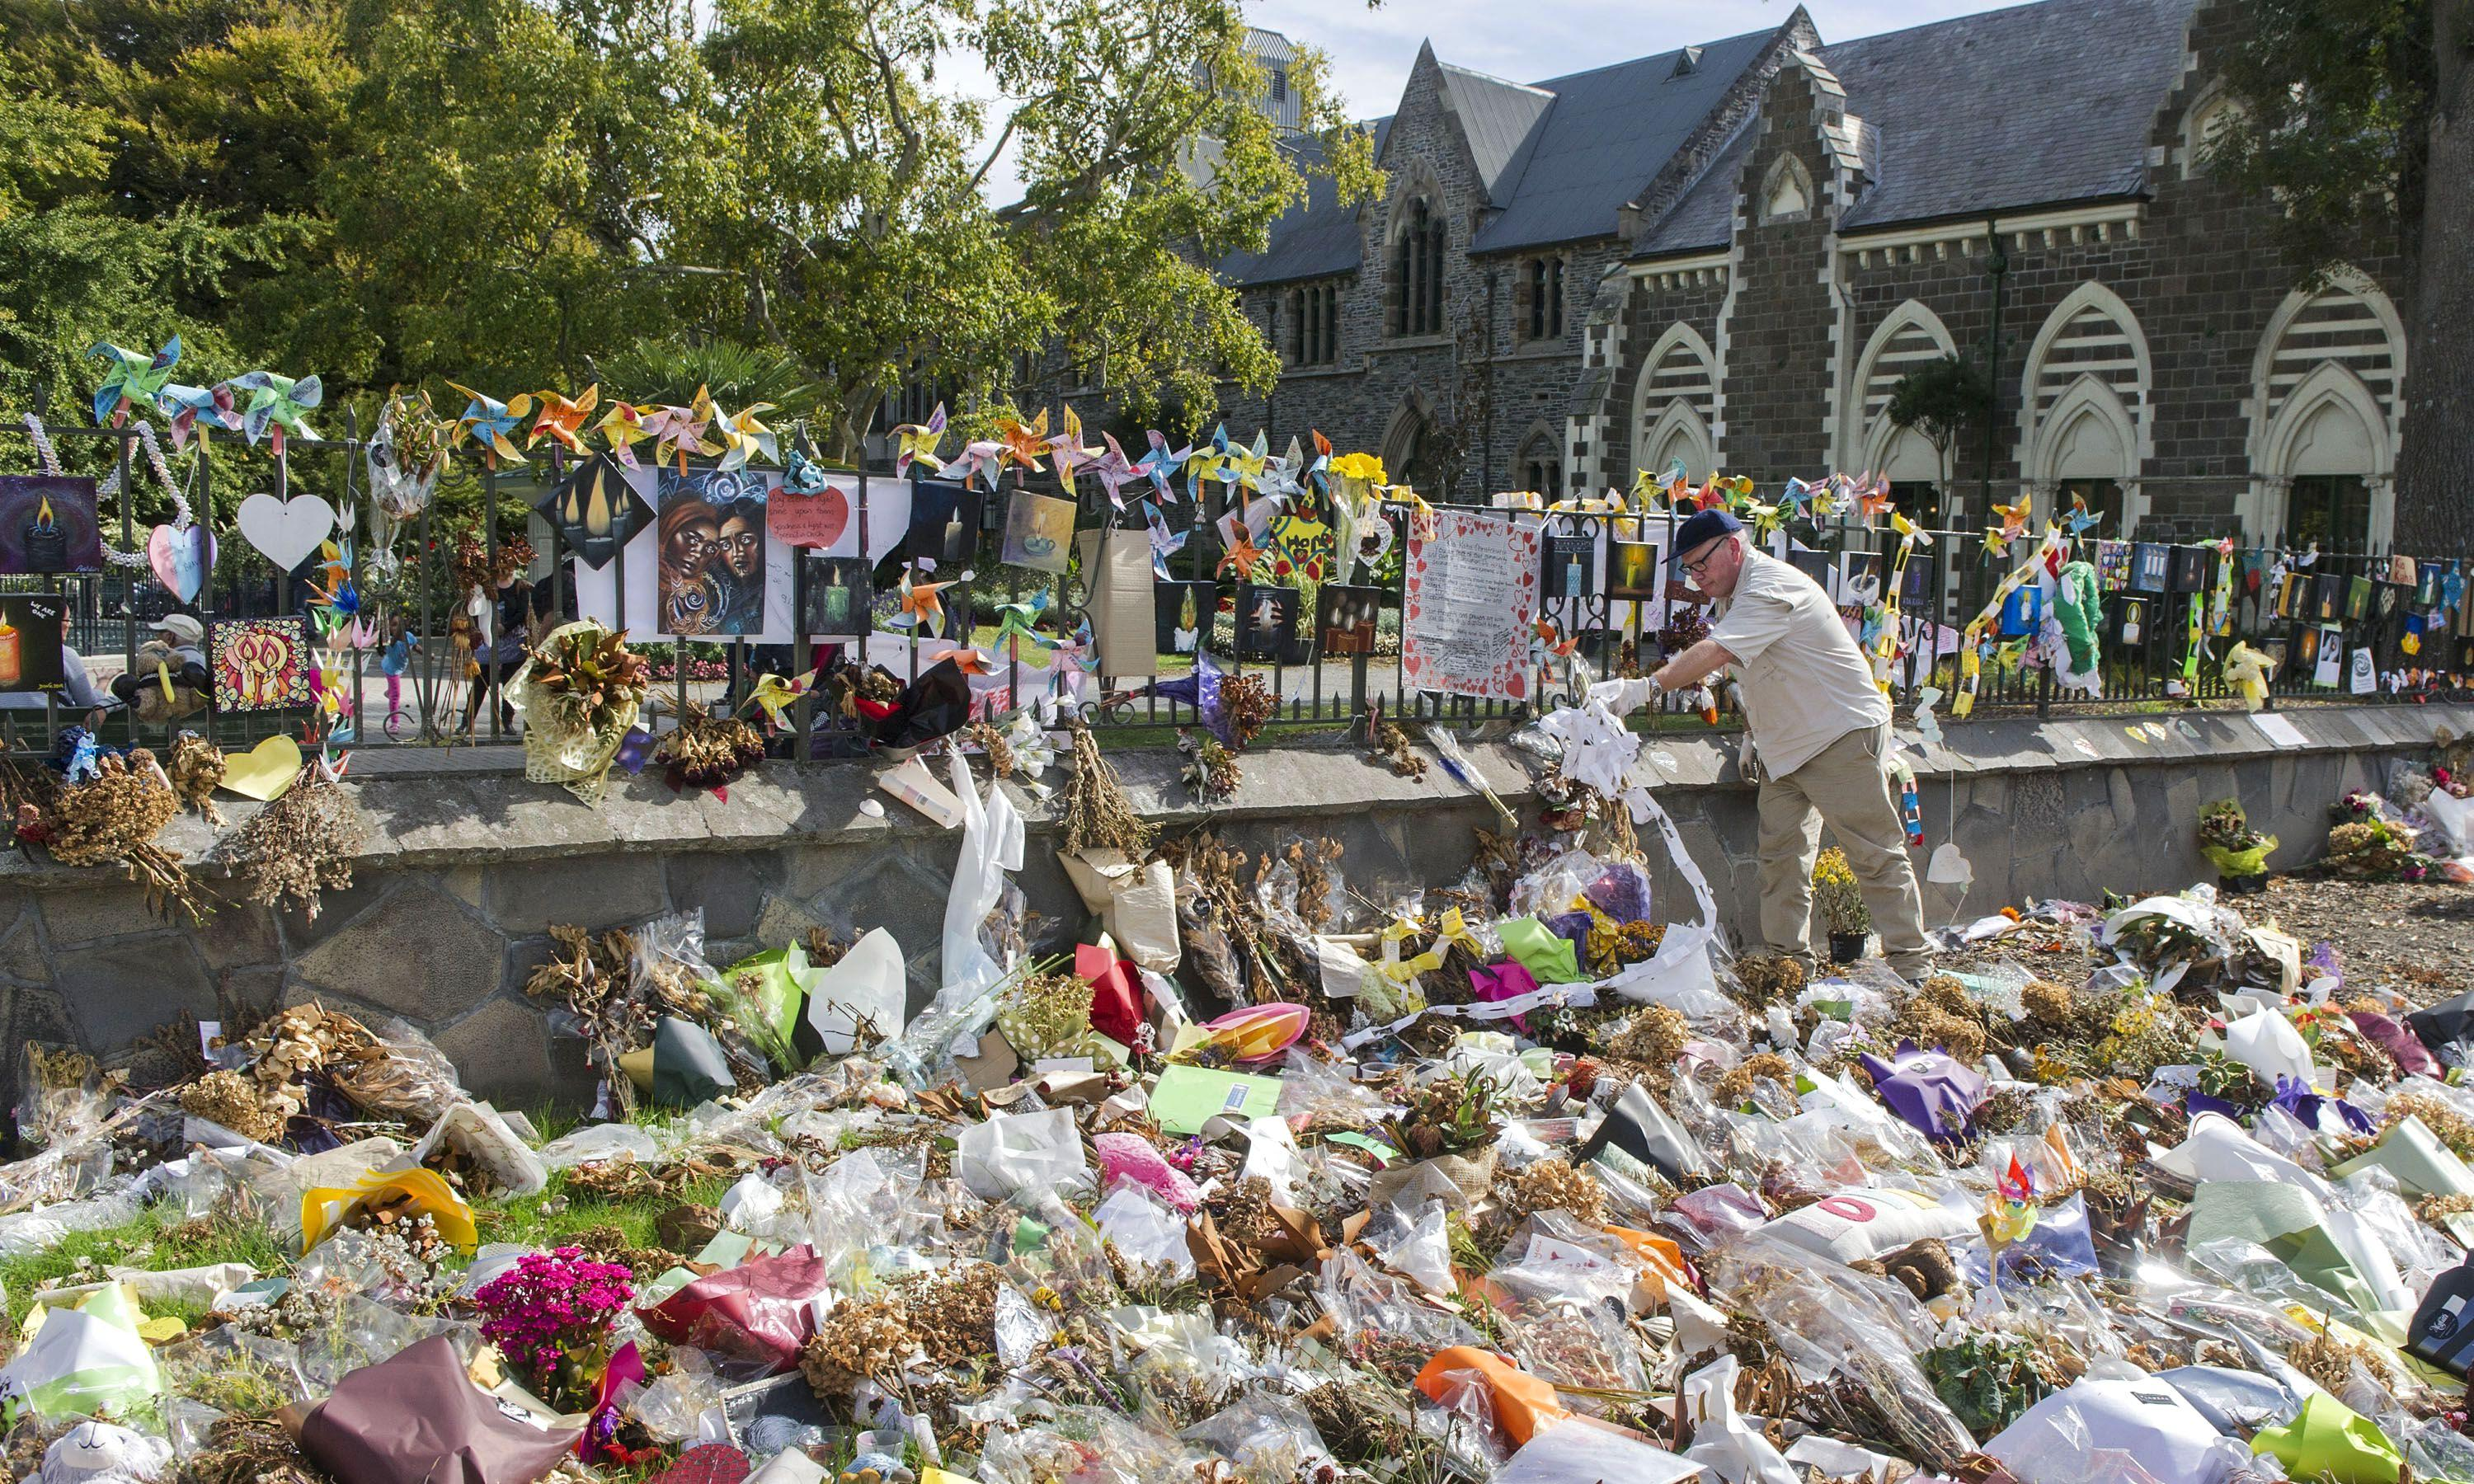 Christchurch mosque killer's theories seeping into mainstream, report warns